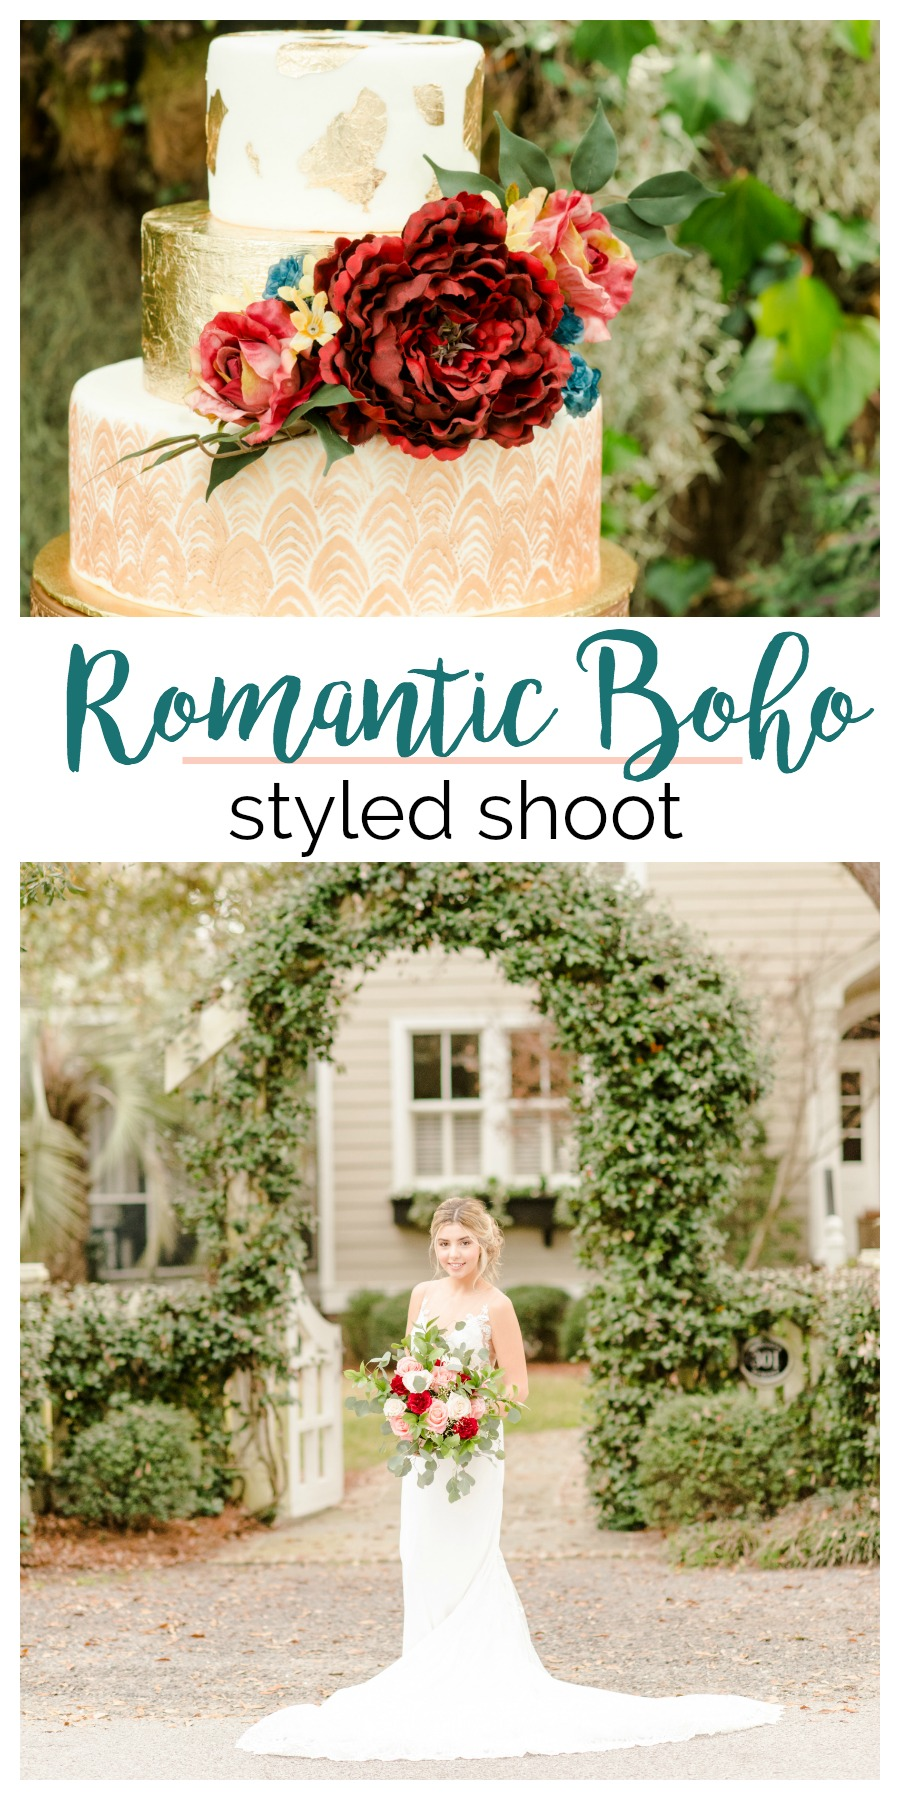 Wedding Inspiration: Romantic Old Village Mount Pleasant Styled Shoot | Palmetto State Weddings | Photography by Candi Leonard Photography